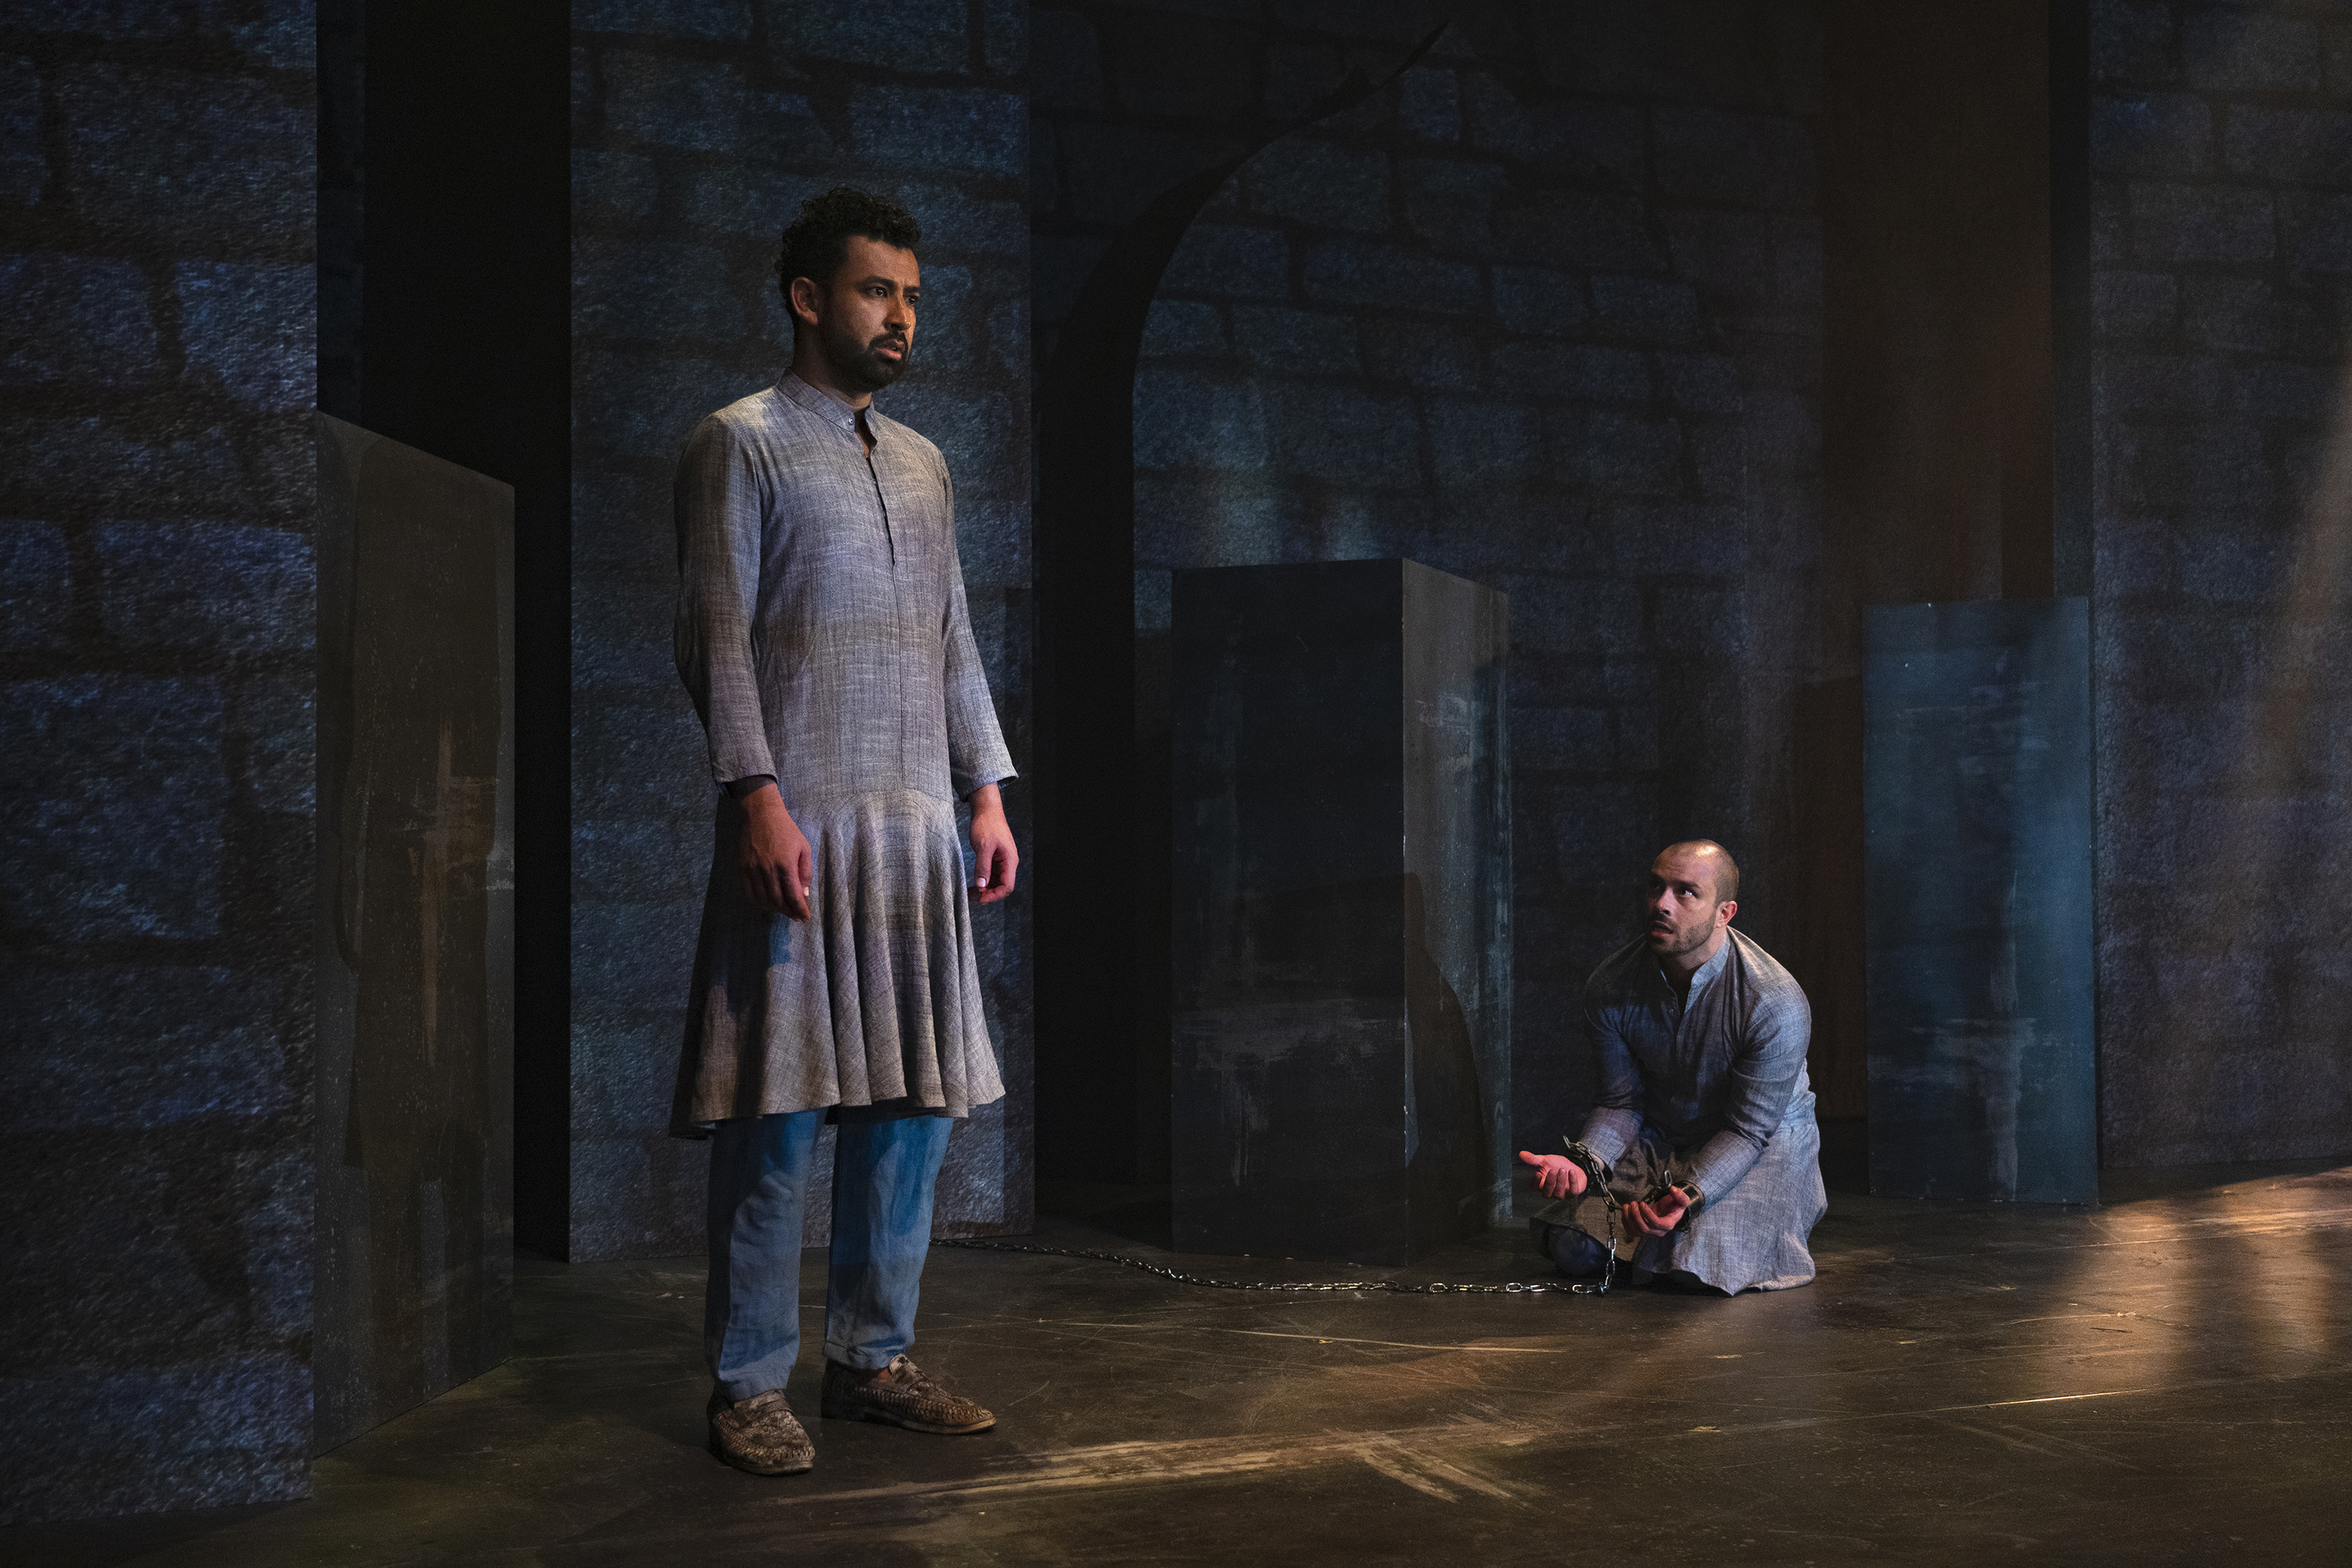 'Guards at the Taj' has been written by famous American playwright Rajiv Joseph. He is also a 2010 Pulitzer Prize finalist. Photo courtesy: Singapore Repertory Theatre